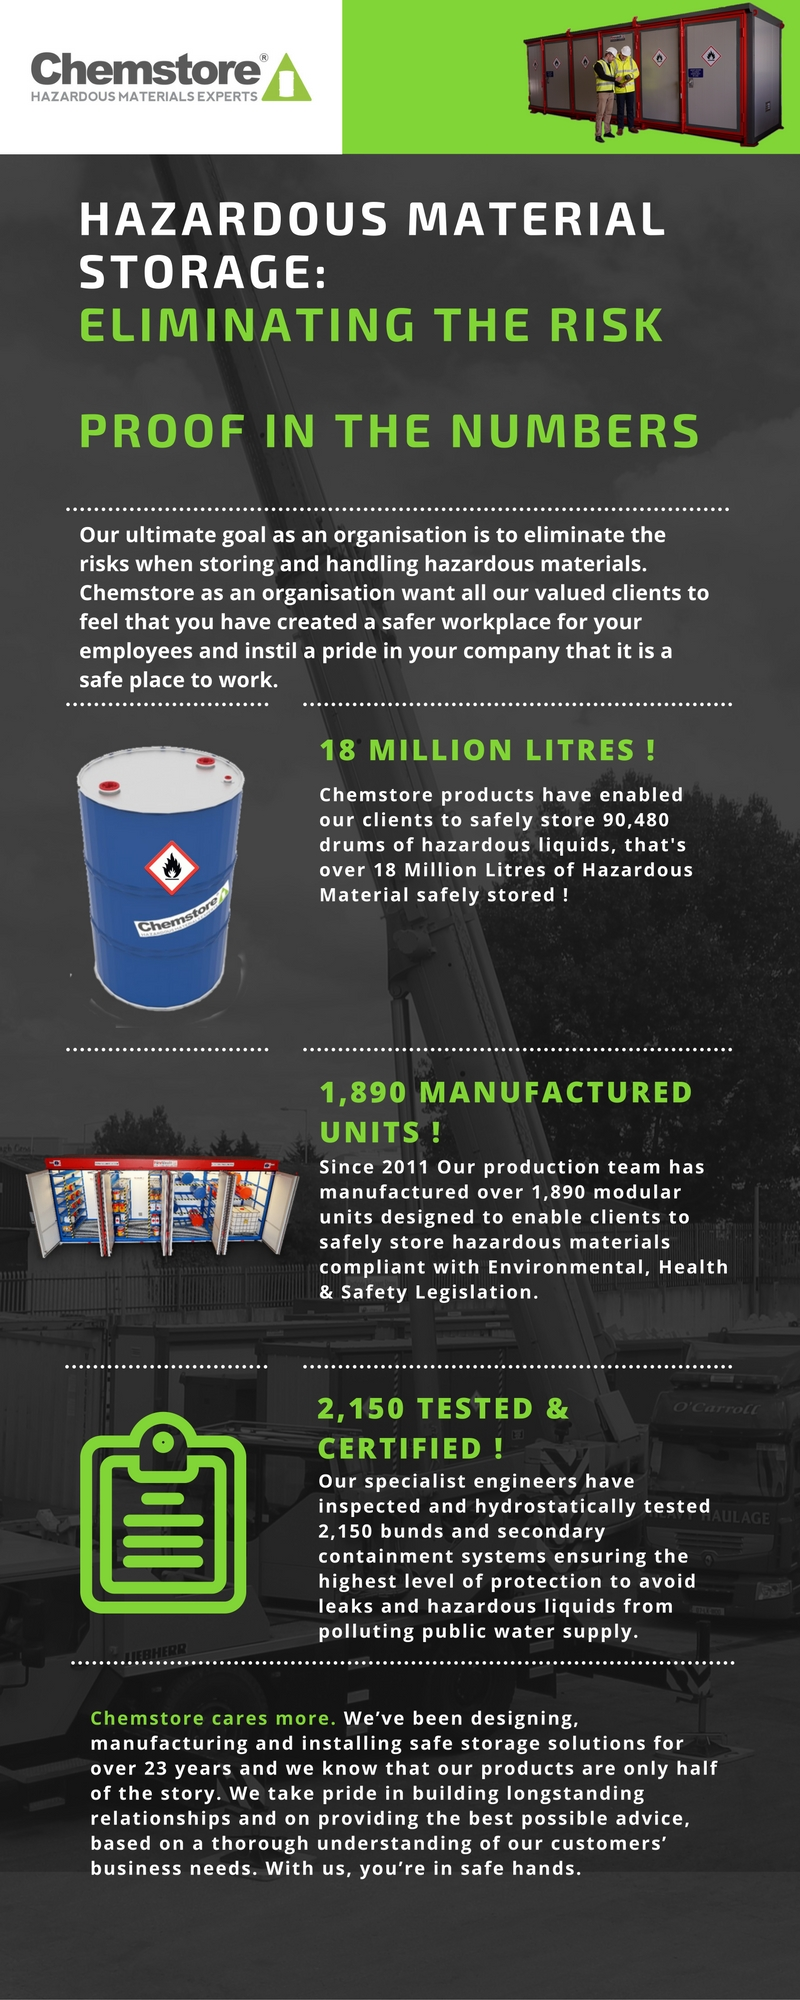 Chemstore - Proof in the Numbers Infographic